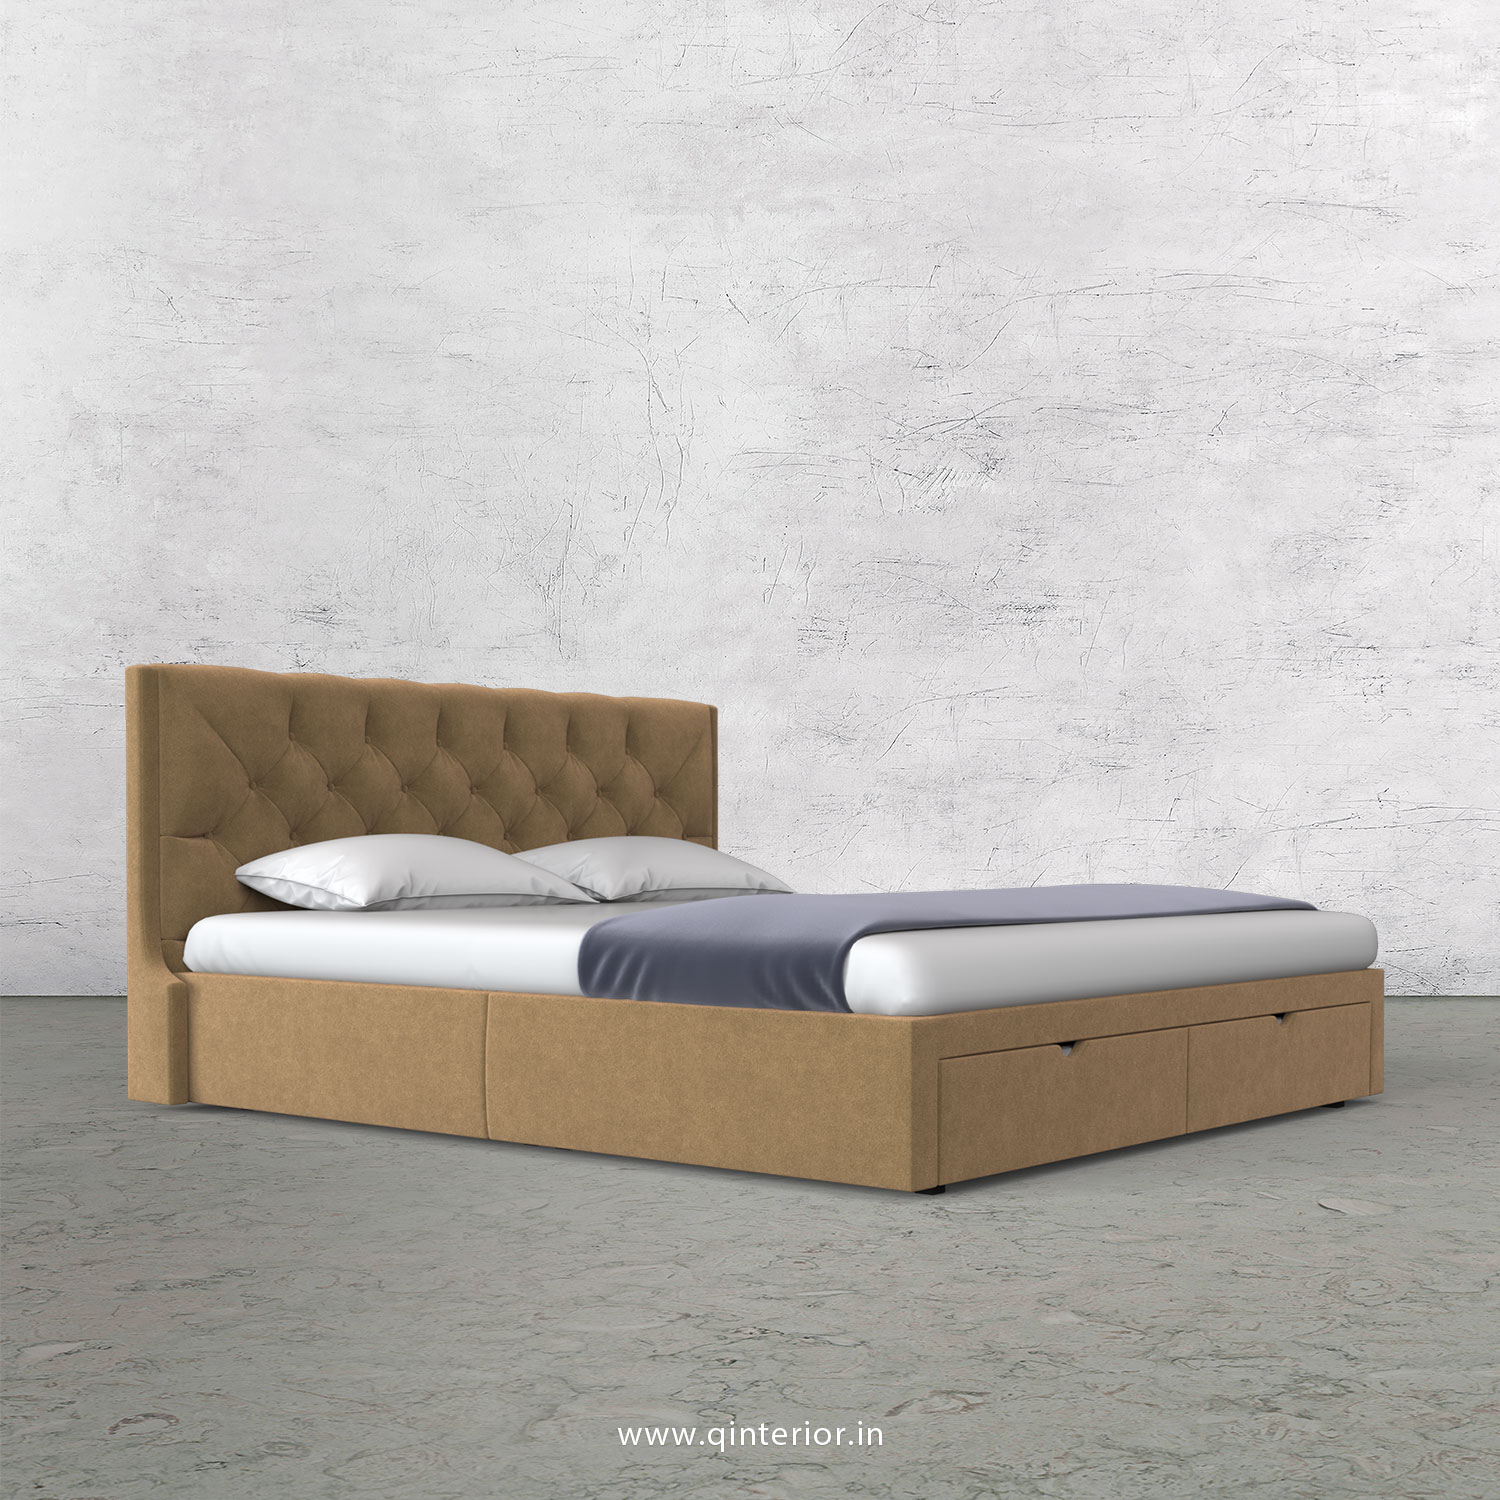 Scorpius King Size Storage Bed in Velvet Fabric - KBD001 VL09